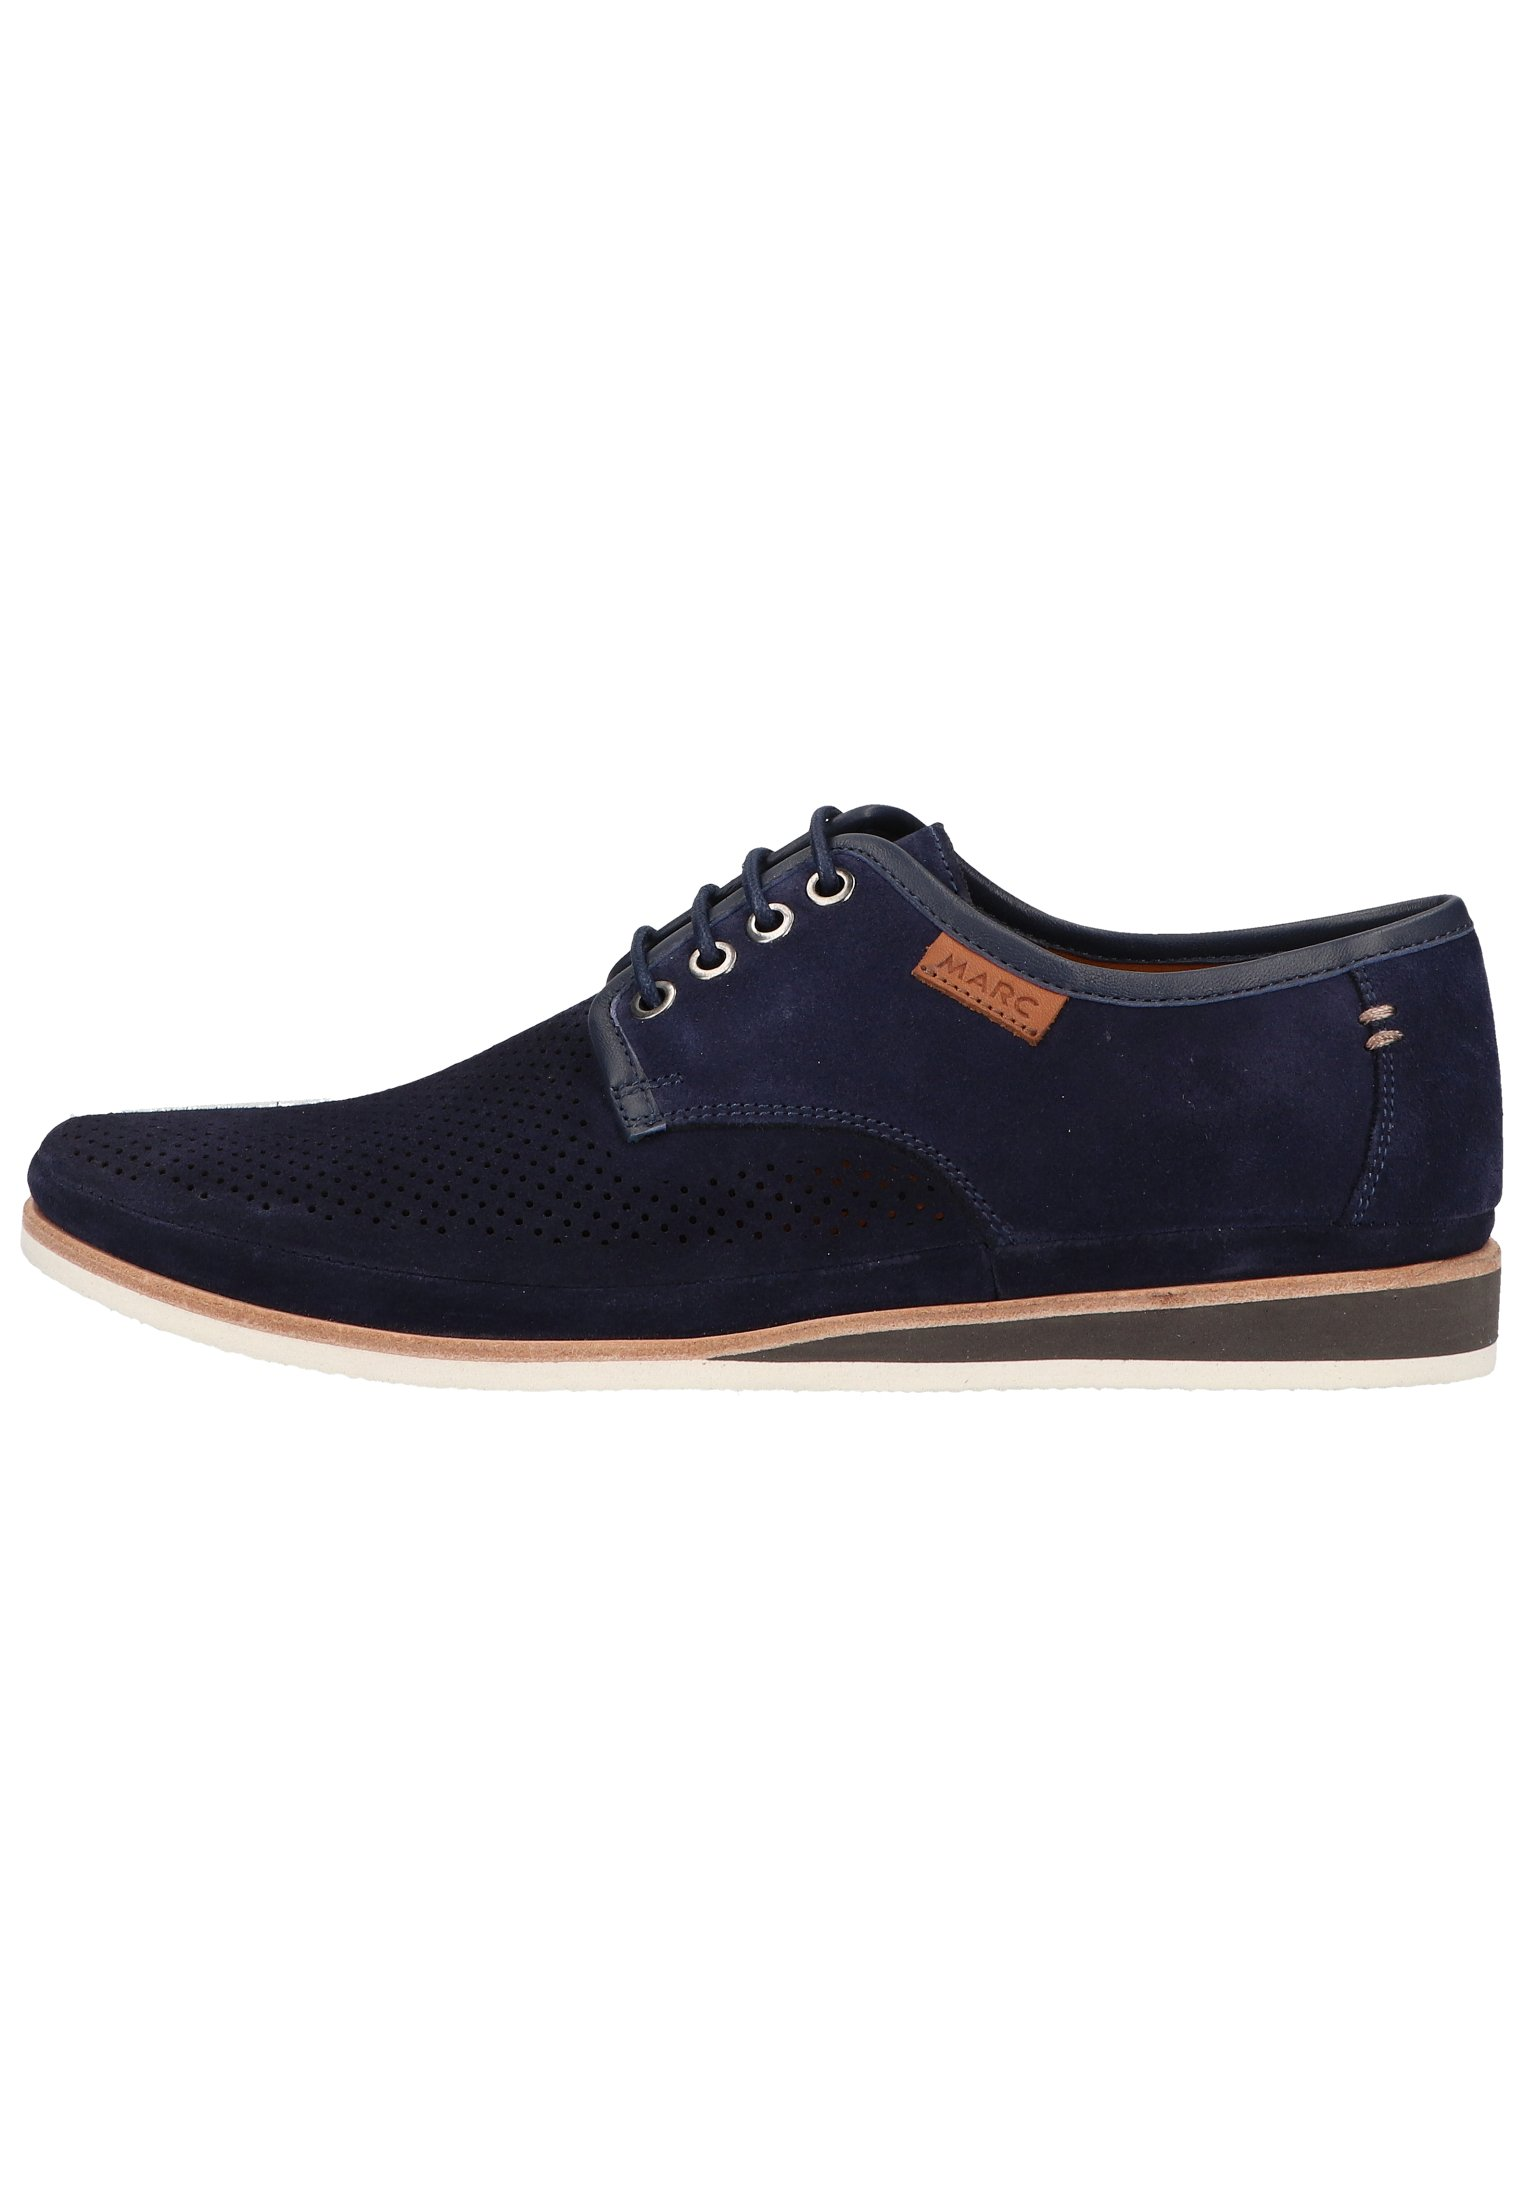 Homme Chaussures à lacets - navy